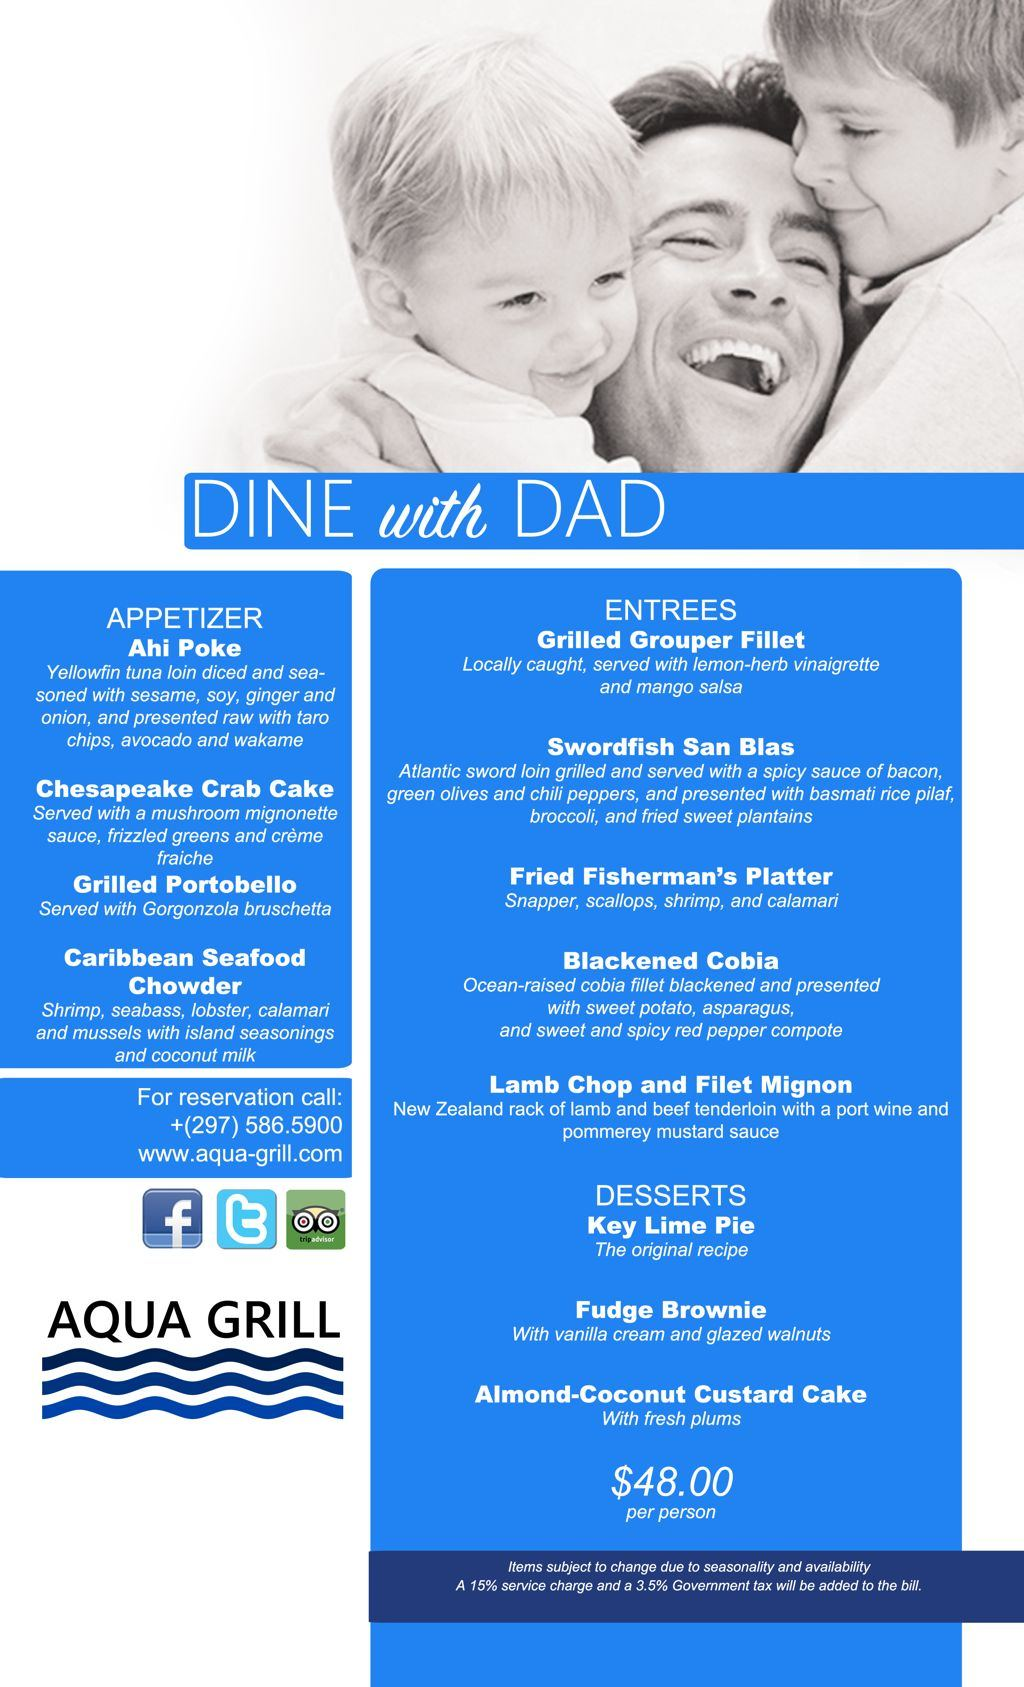 Dine with Dad at Aqua Grill